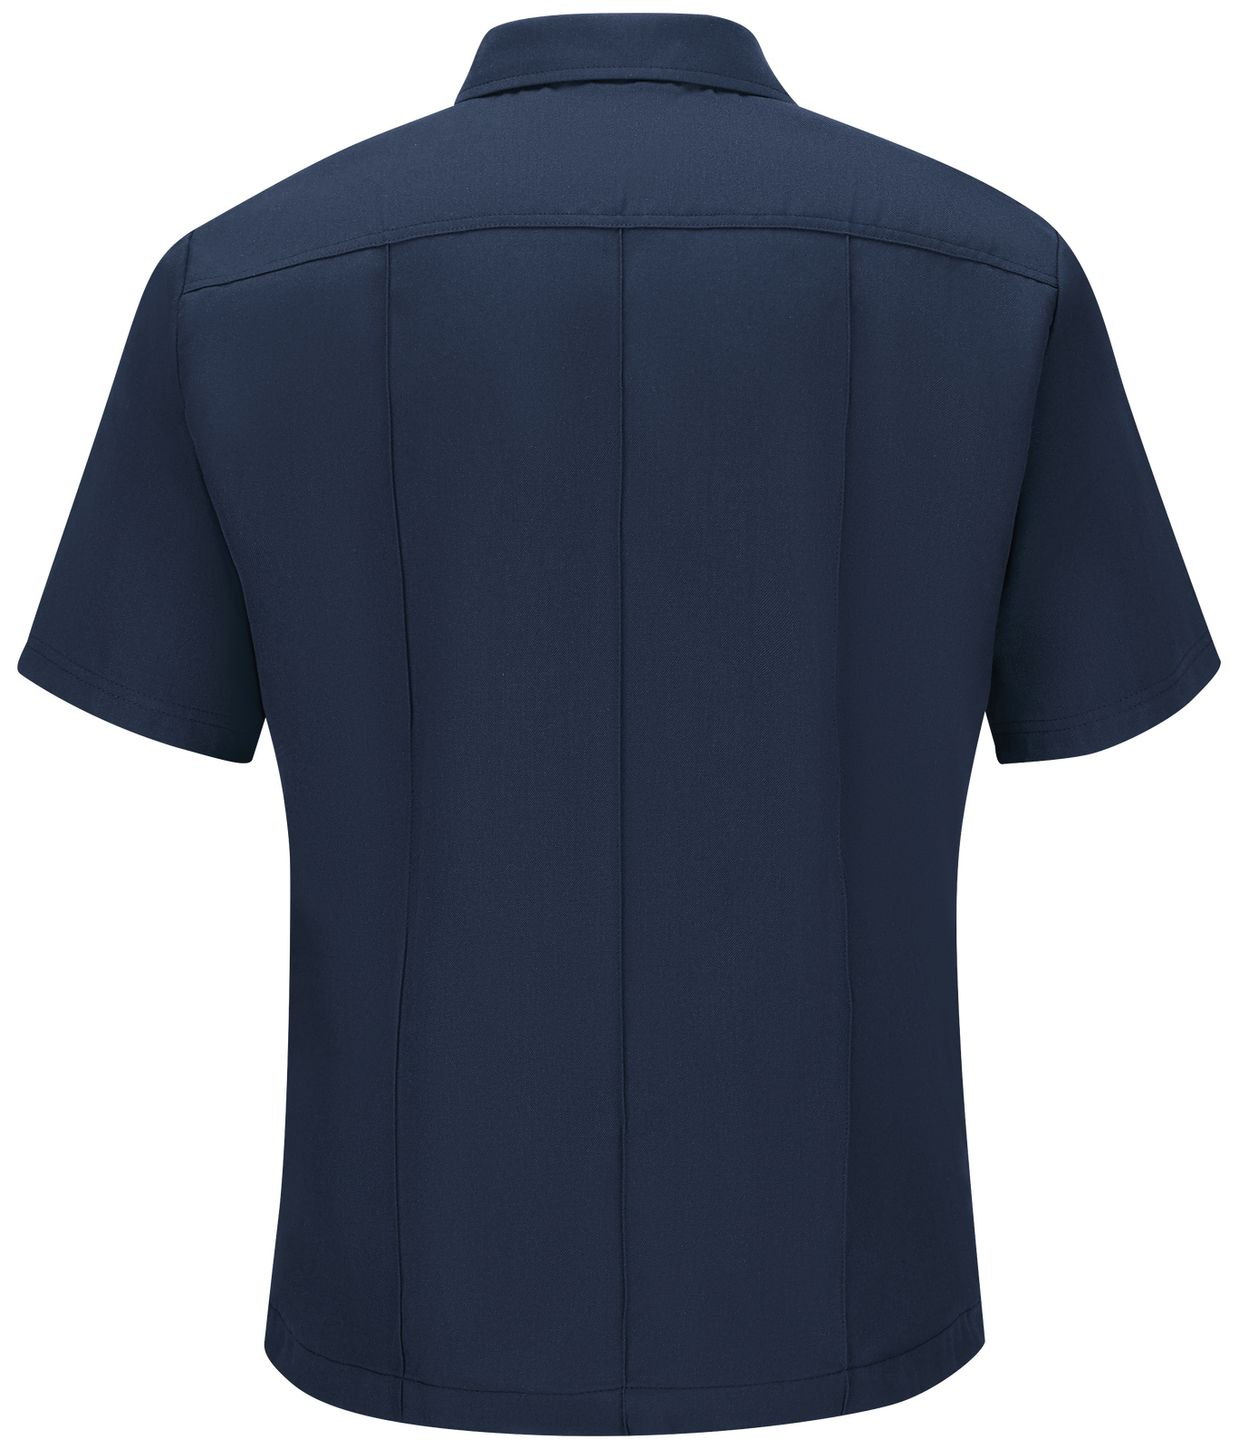 workrite-fr-shirt-fsu2-untucked-uniform-station-no-73-navy-back.jpg